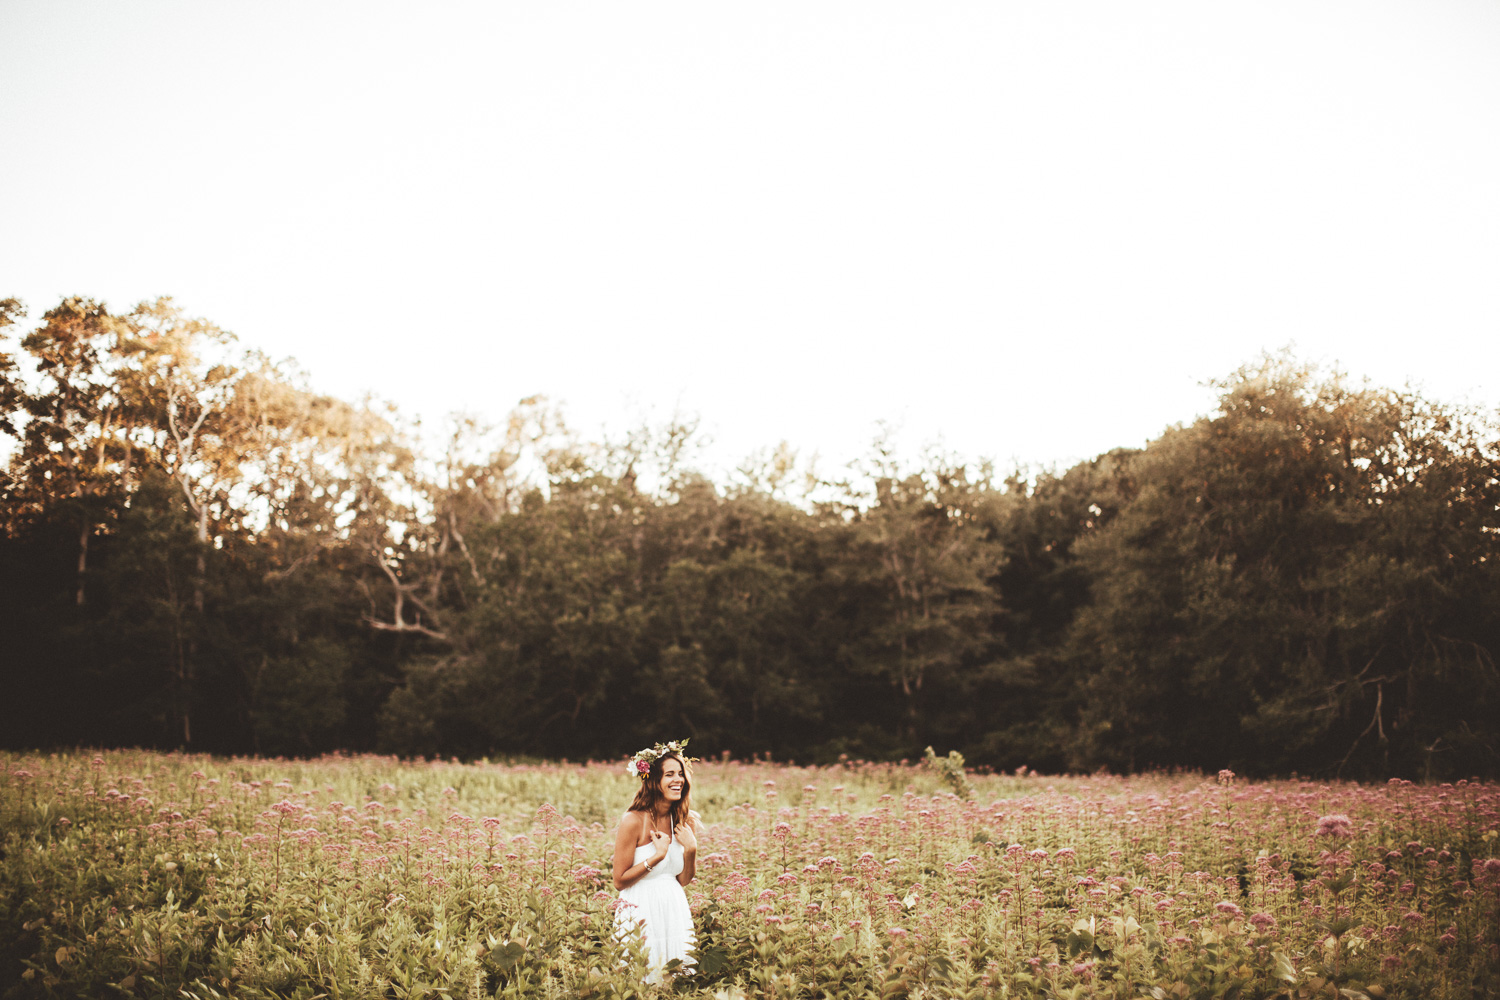 rustic-flower-field-wedding-11.jpg